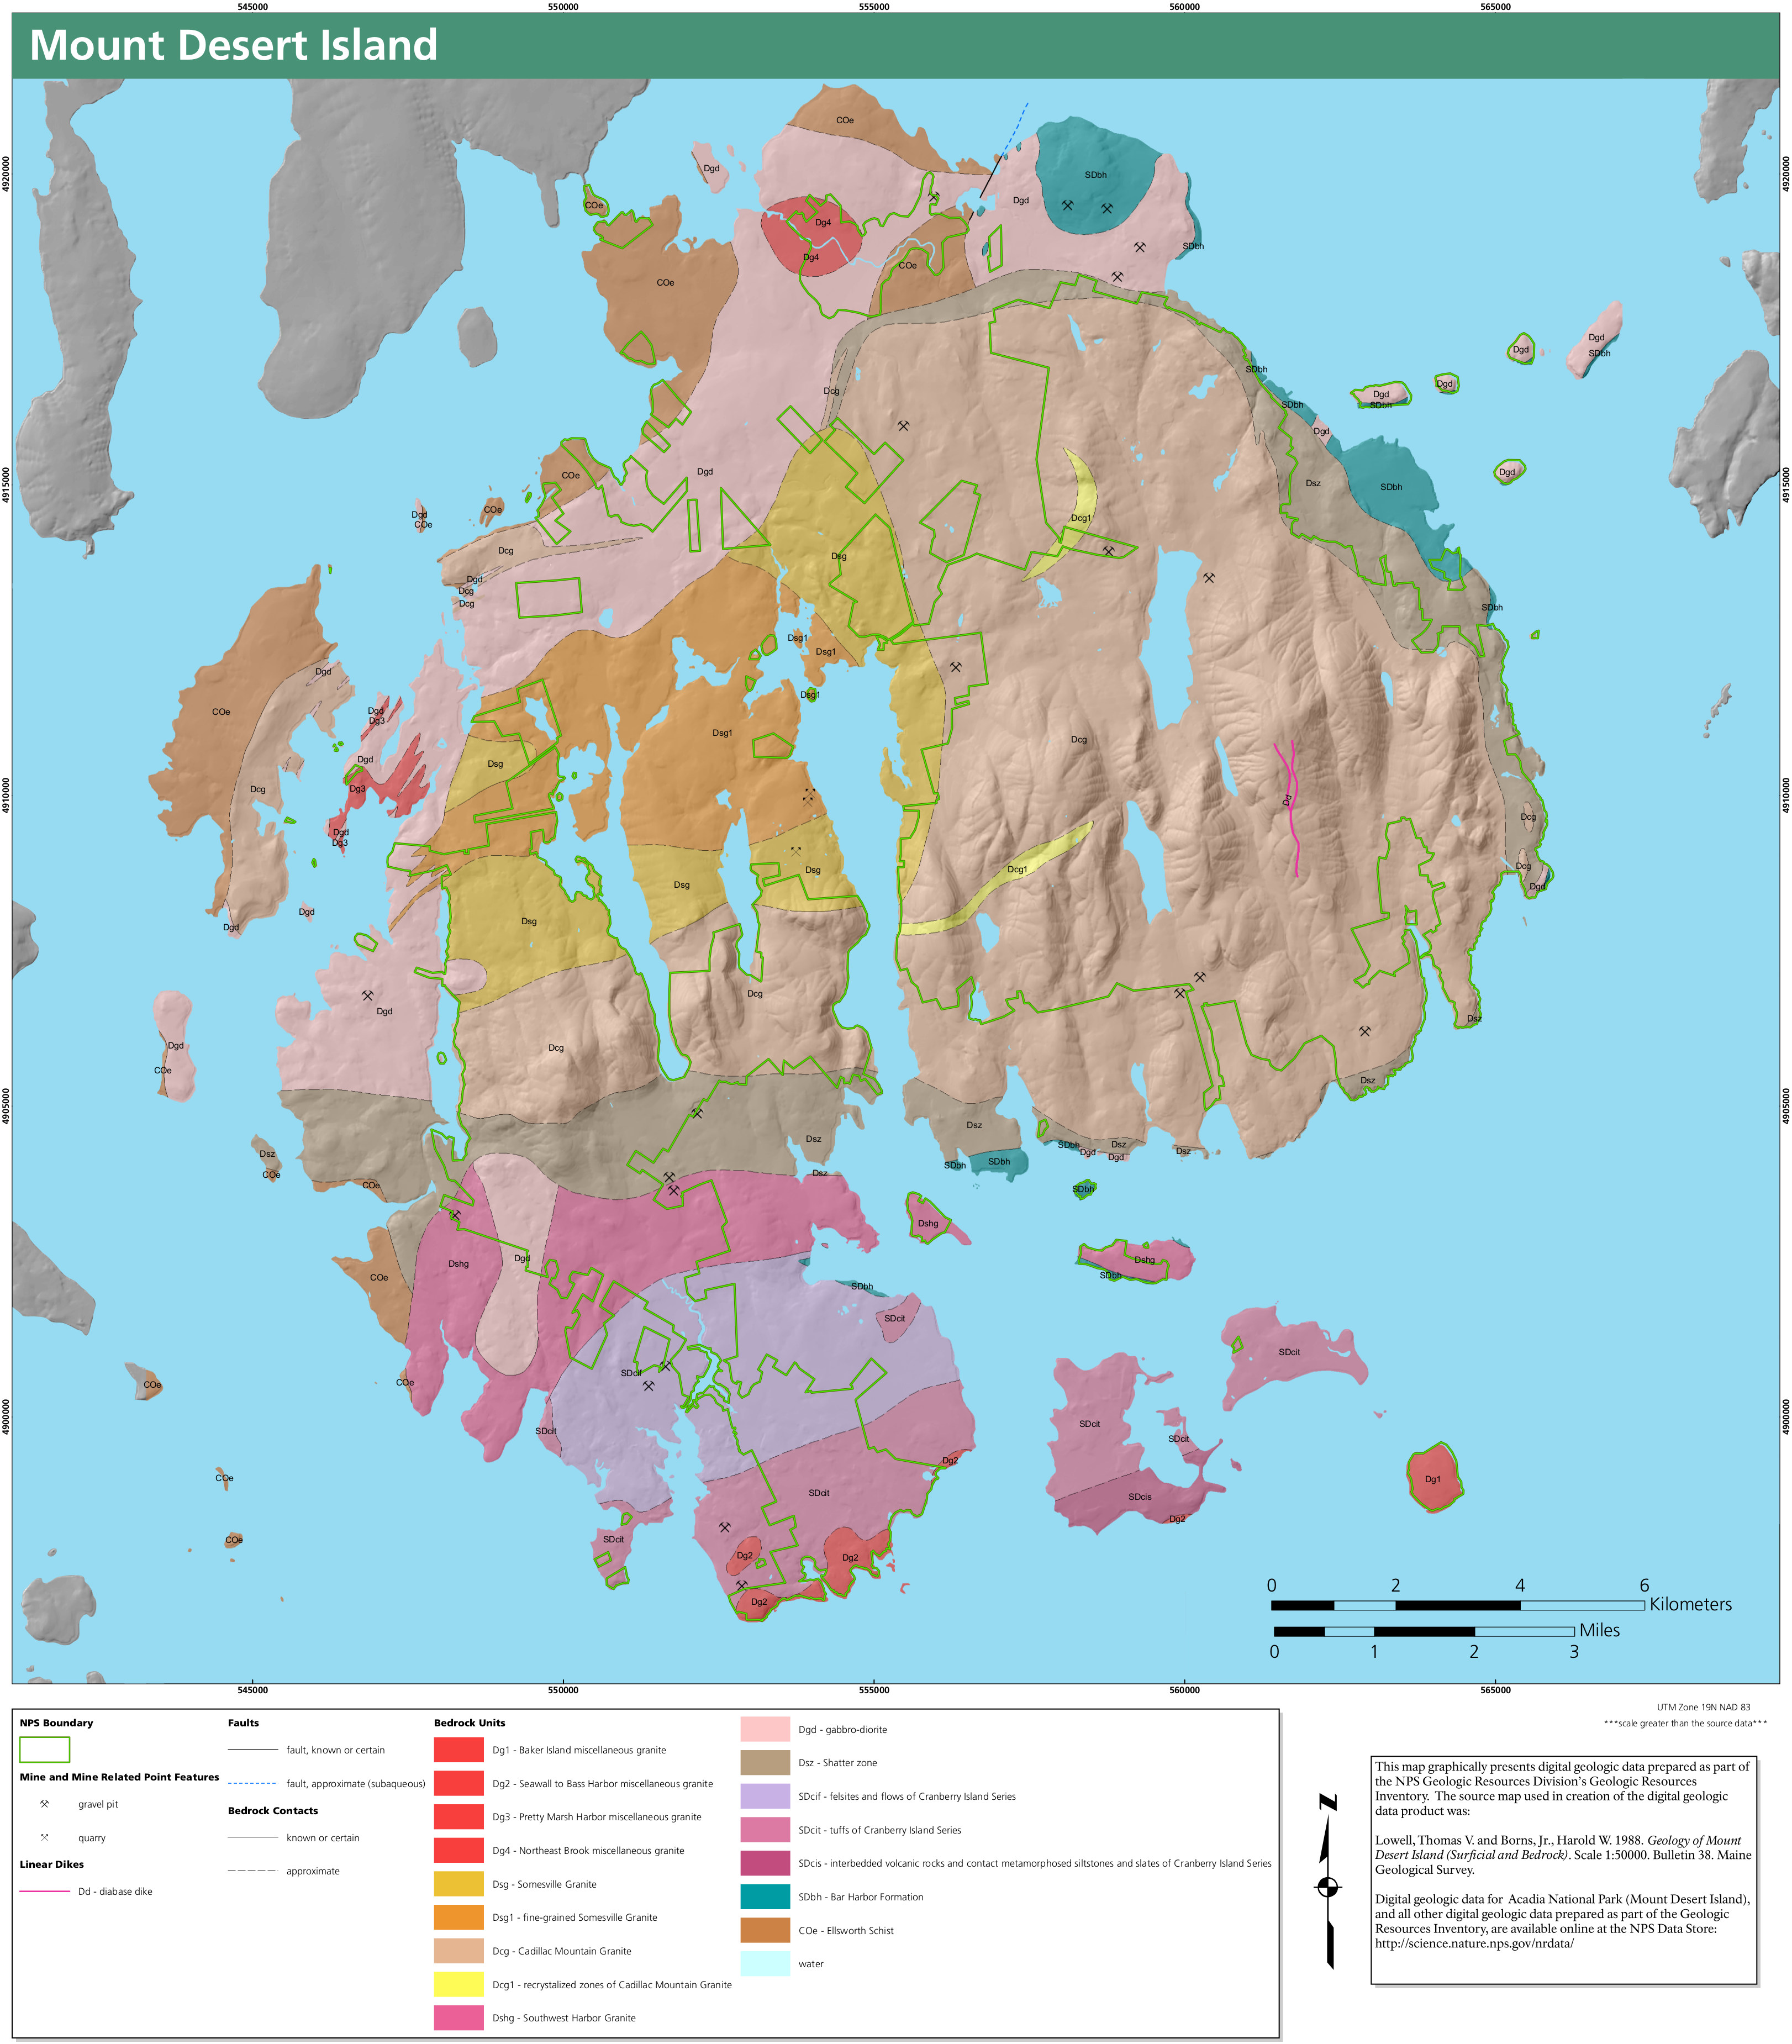 Acadia Maps NPMapscom Just Free Maps Period - Map of us national parks poster